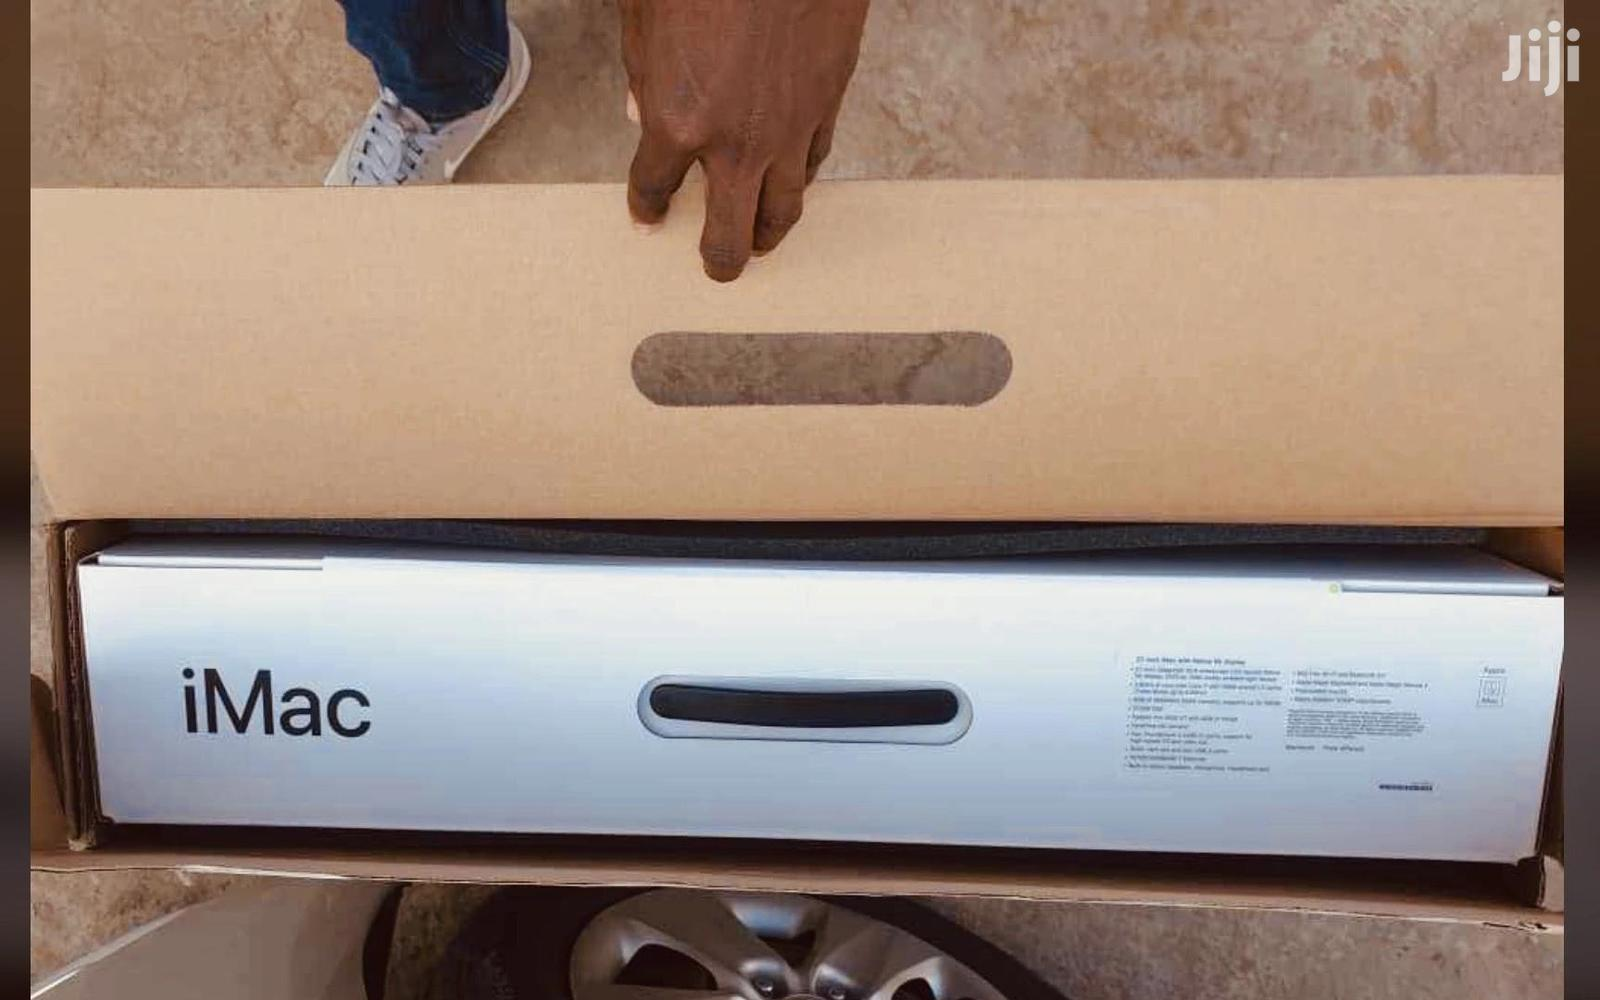 New Desktop Computer Apple iMac 8GB Intel Core i7 SSD 512GB | Laptops & Computers for sale in Accra Metropolitan, Greater Accra, Ghana